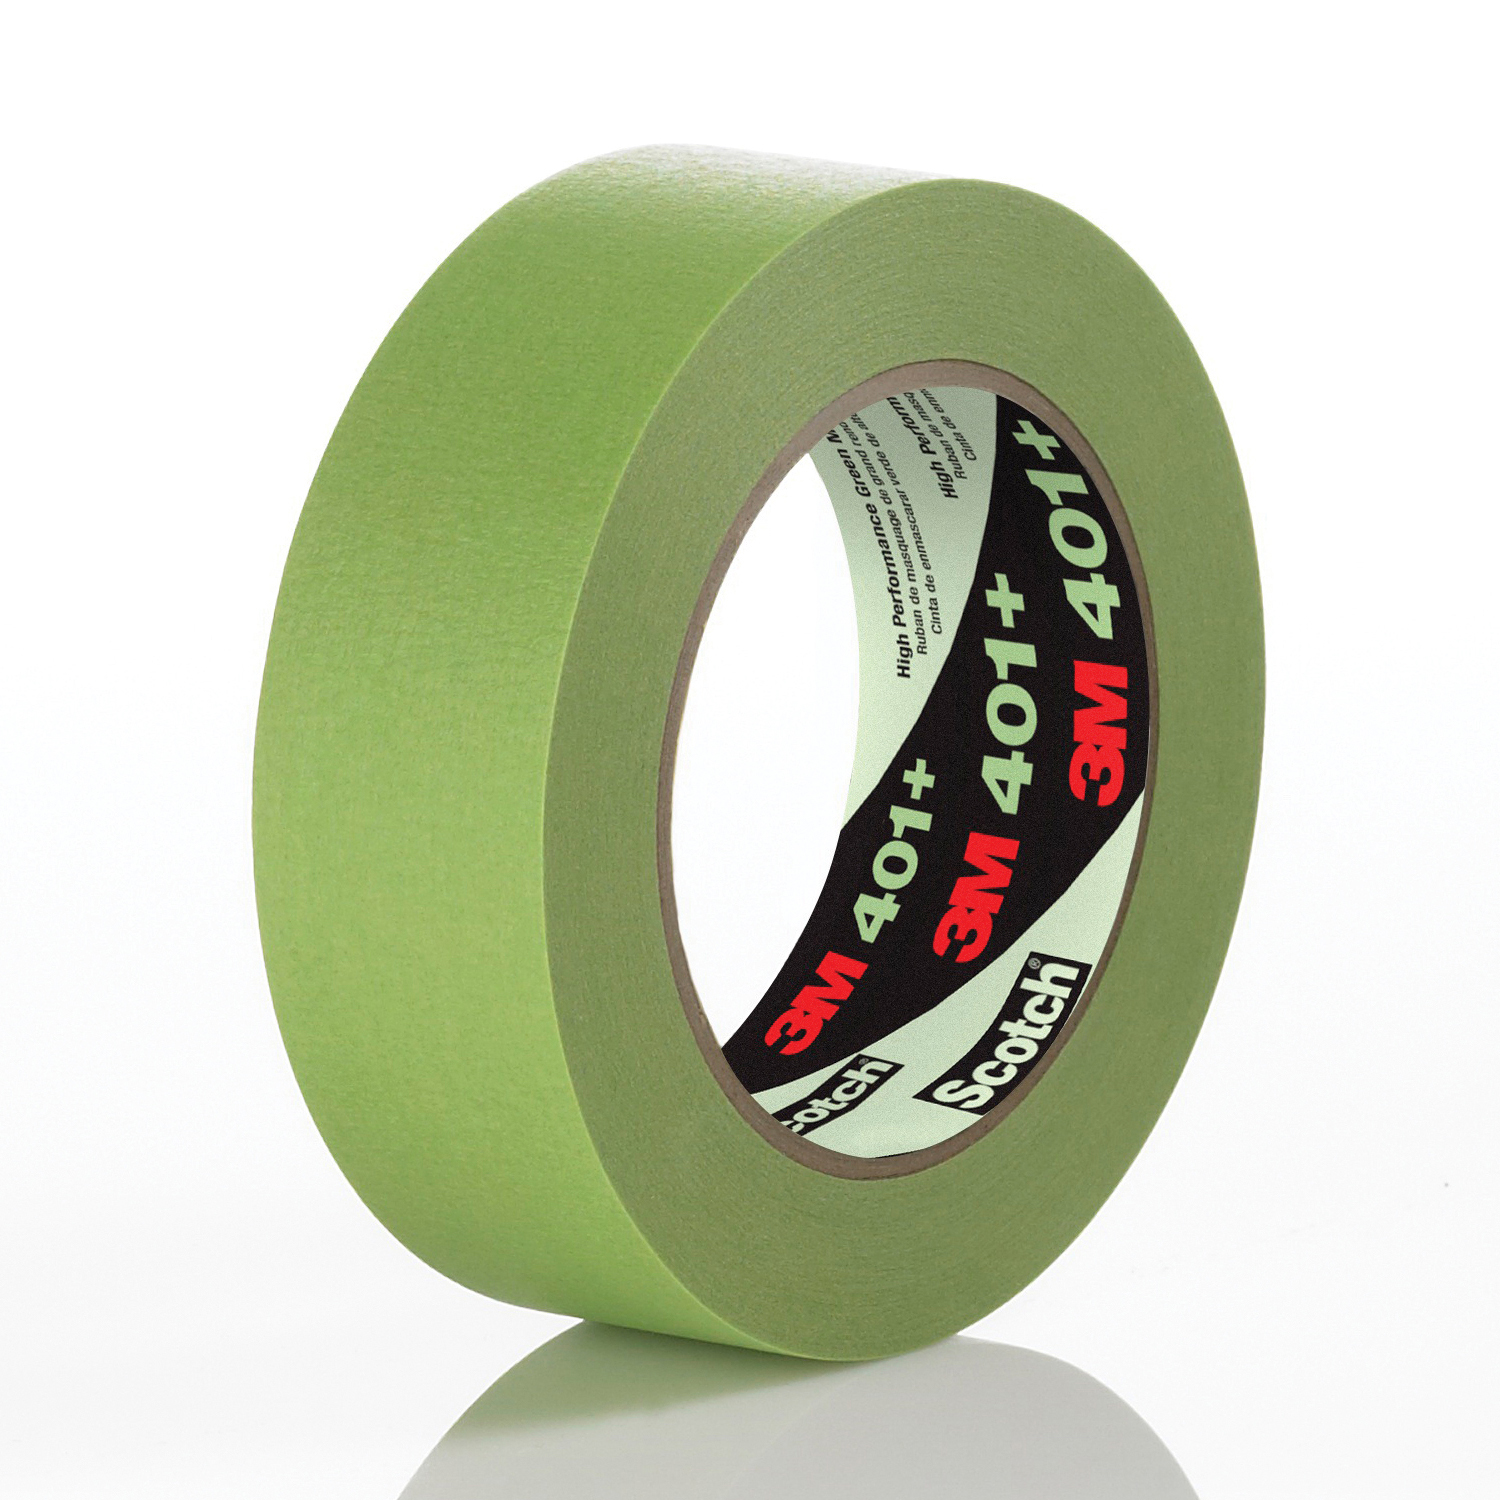 3M™ 051115-64759 High Performance Masking Tape, 55 m L x 12 mm W, 6.7 mil THK, Natural/Synthetic Rubber Adhesive, Crepe Paper Backing